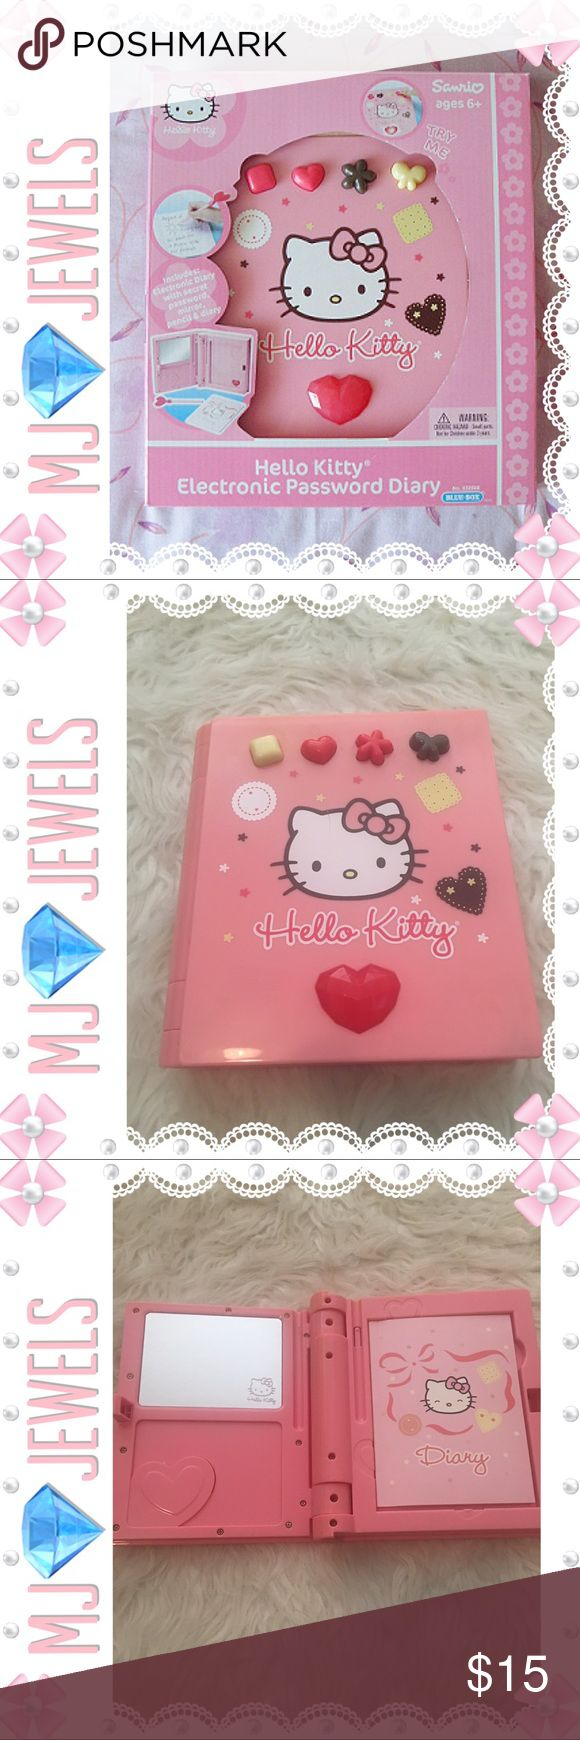 "Hello Kitty Electronic Diary Psst! Can you keep a secret? Hello Kitty can! With this Electronic Password Diary, she'll keep all your hopes and dreams under wraps. You'll need a secret password just to get in, which means the diary is for your eyes only. Includes a mirror, pencil and diary. Requires 2 ""AA"", included. Measures 8"" x 6.5"". Not New In Good Condition2""AA"" included Does not have original box ‍♀️ Hello Kitty Accessories"